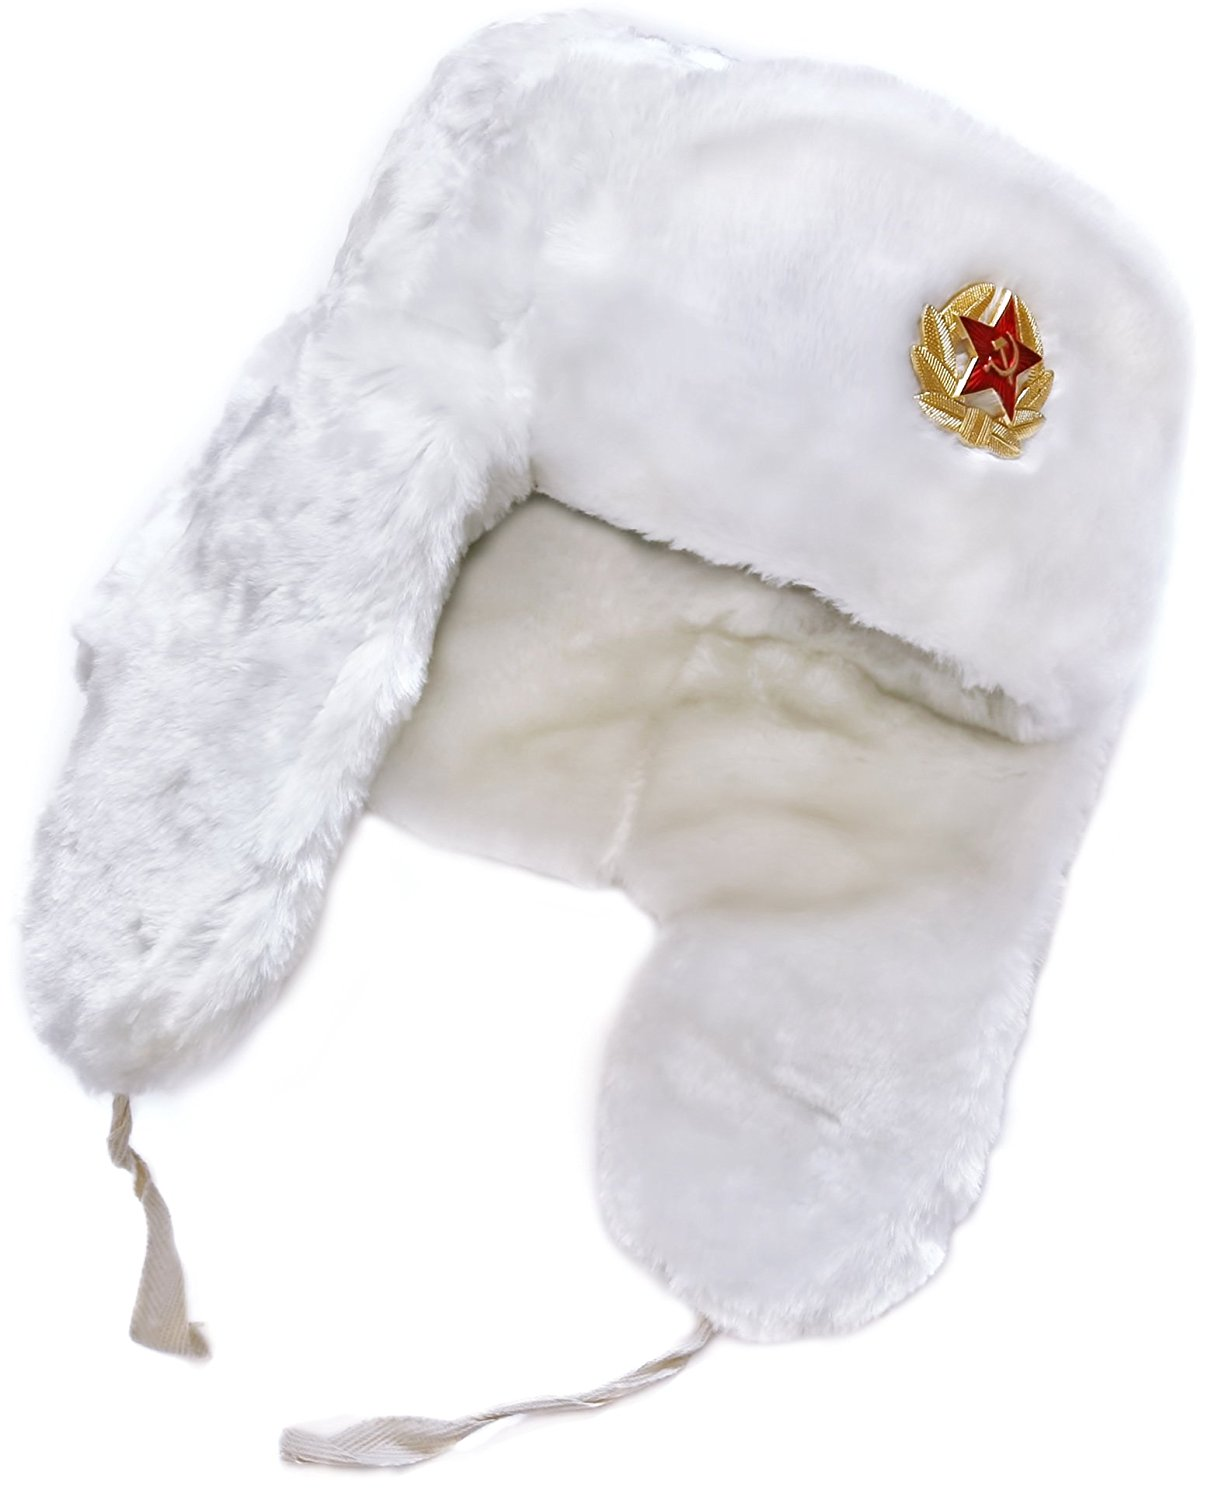 423bea911dda9 Get Quotations · Ushanka-hat Russian Soviet Army Fur Military Cossack